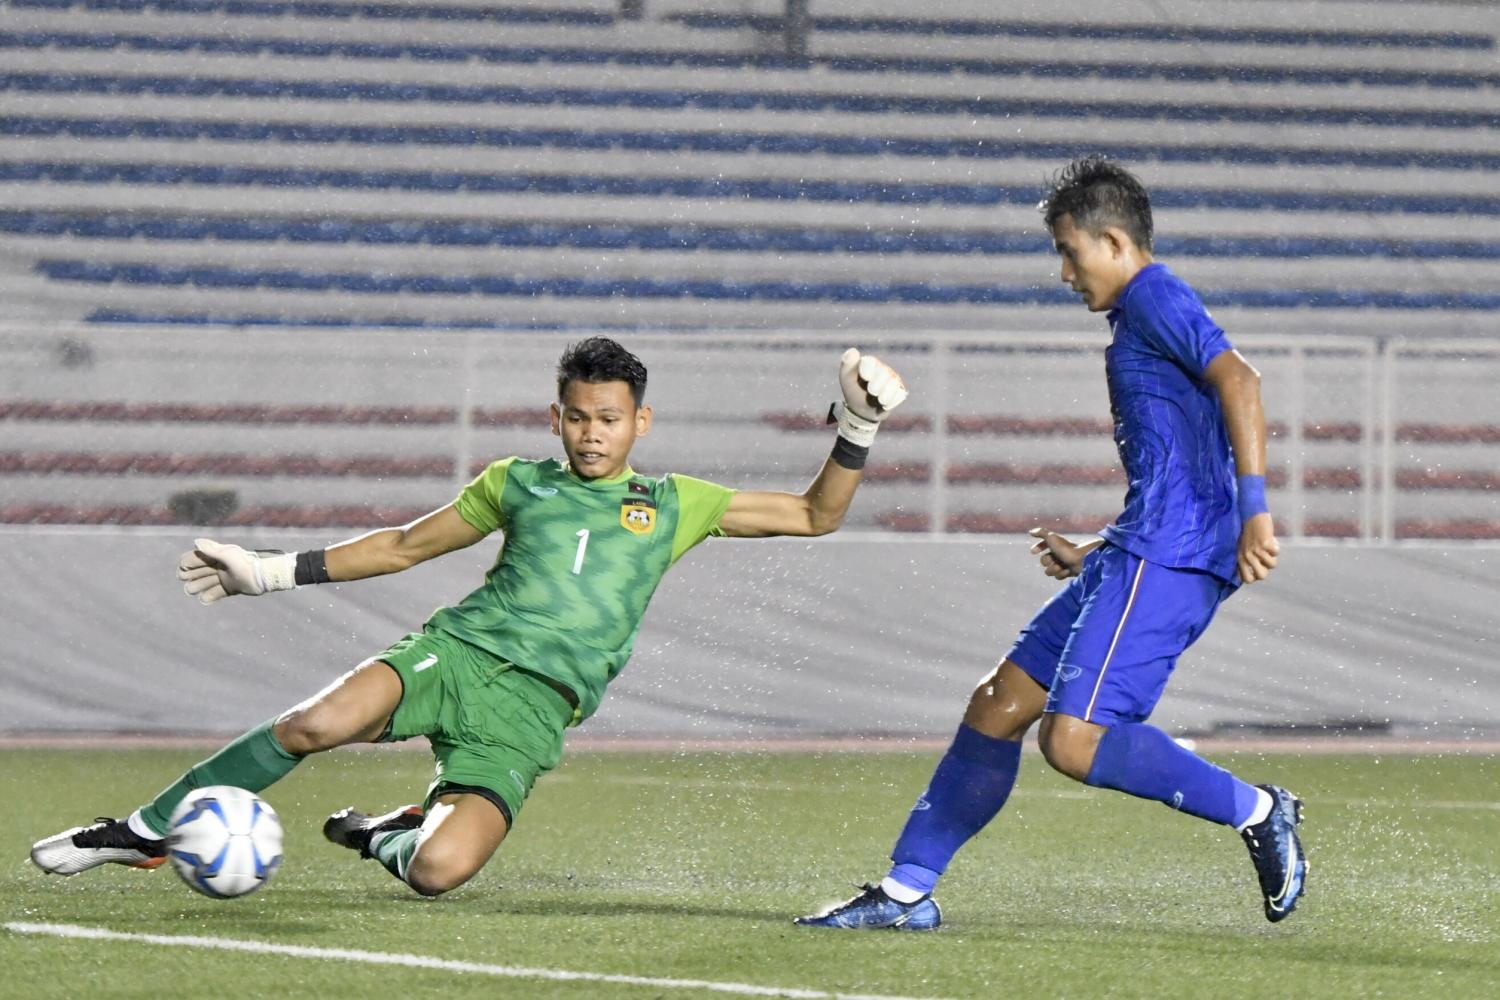 Thailand's Suphanat Mueanta, right, scores his second goal against Laos on Tuesday.